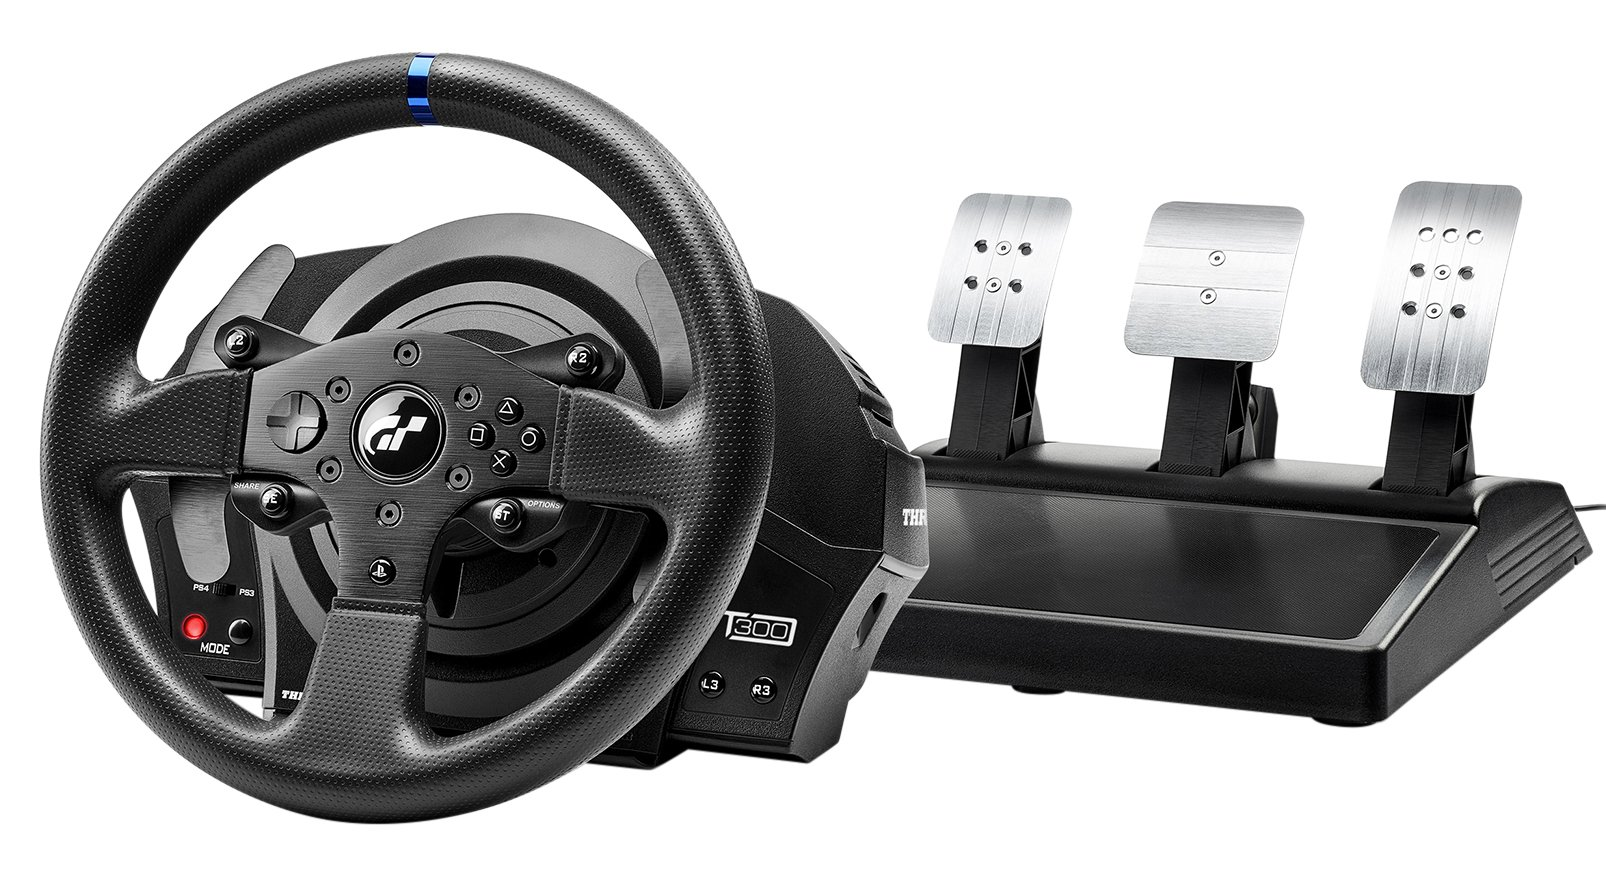 Thrustmaster T300 RS GT Force Feedback Racing Wheel with 3 Pedals set - Official Gran Tursimo licensed - for PS4 and PC - works with PS5 games